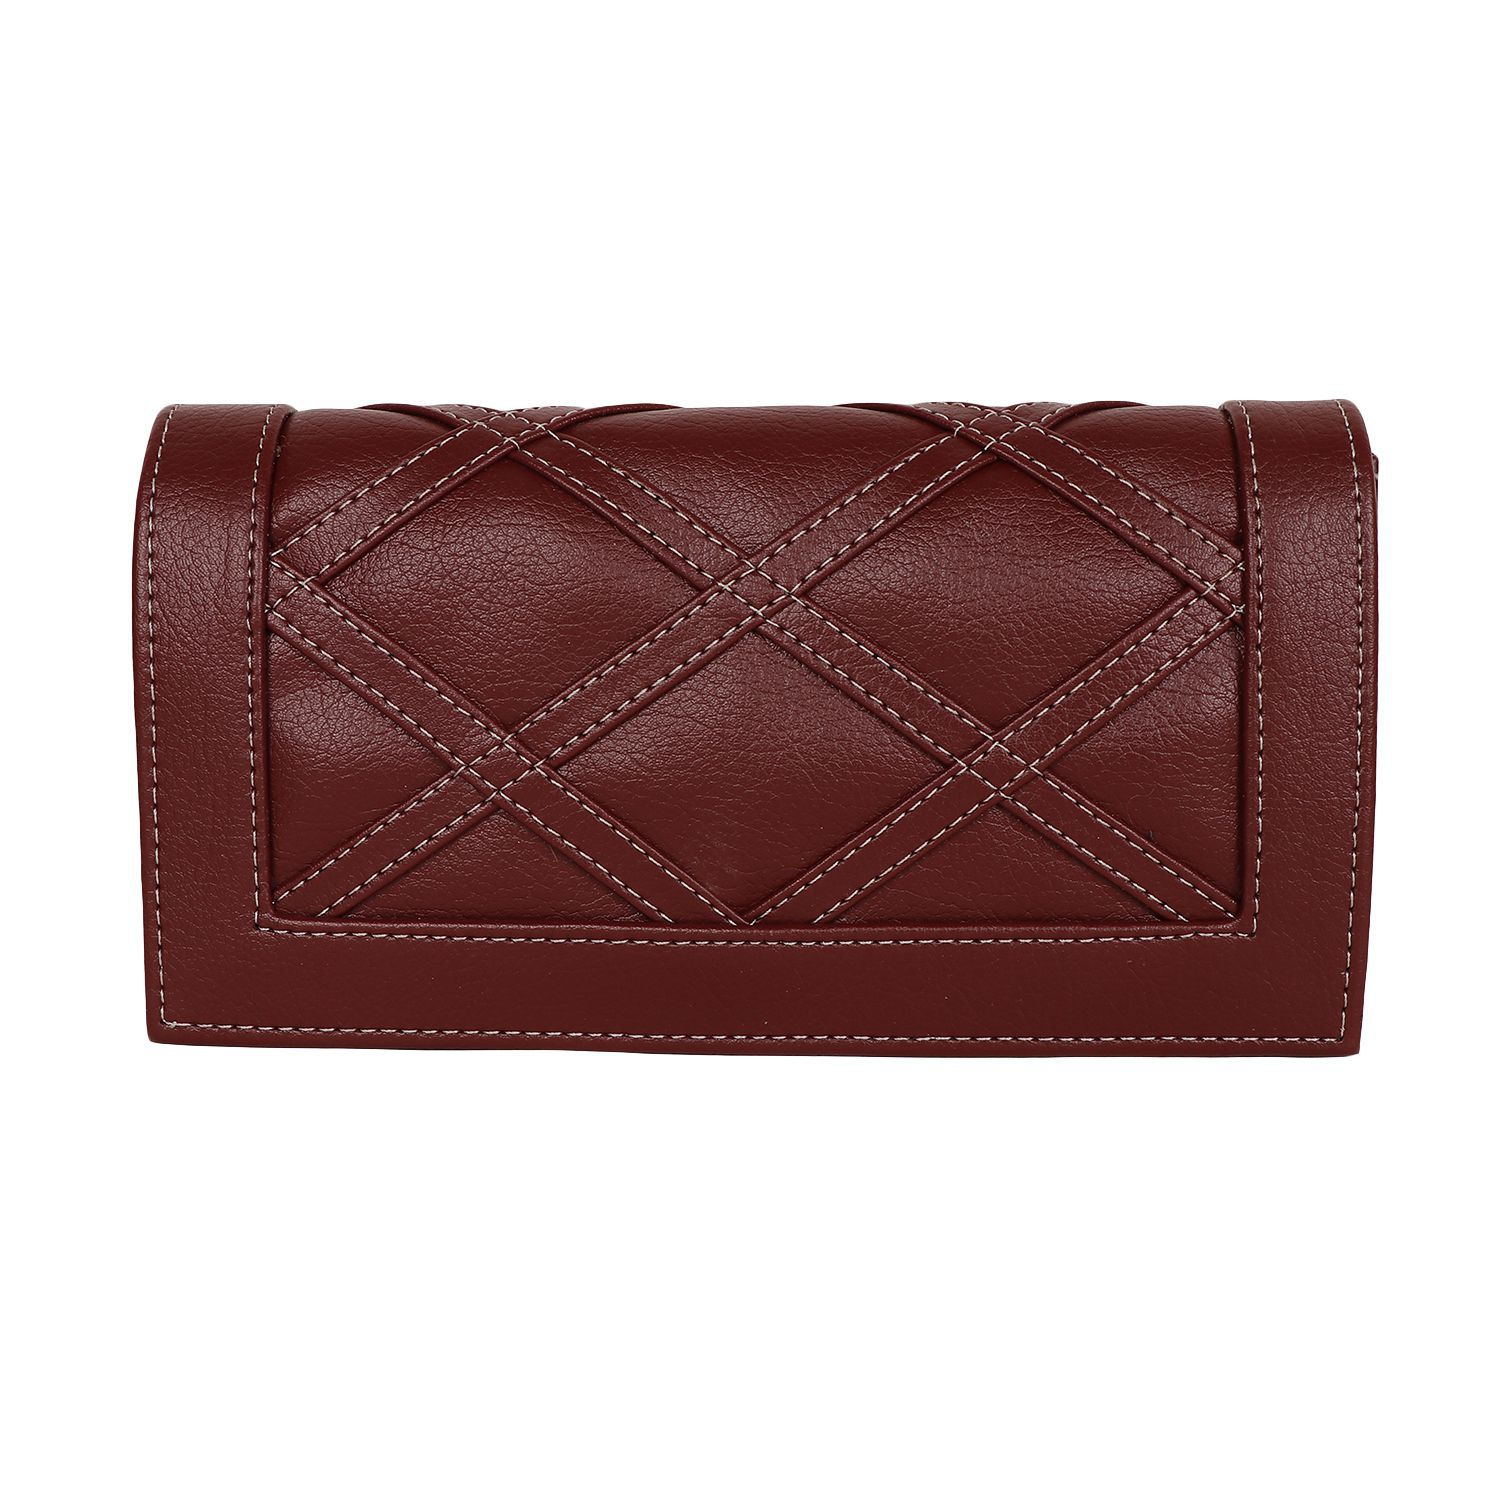 Regalia Maroon Pure Leather Box Clutch